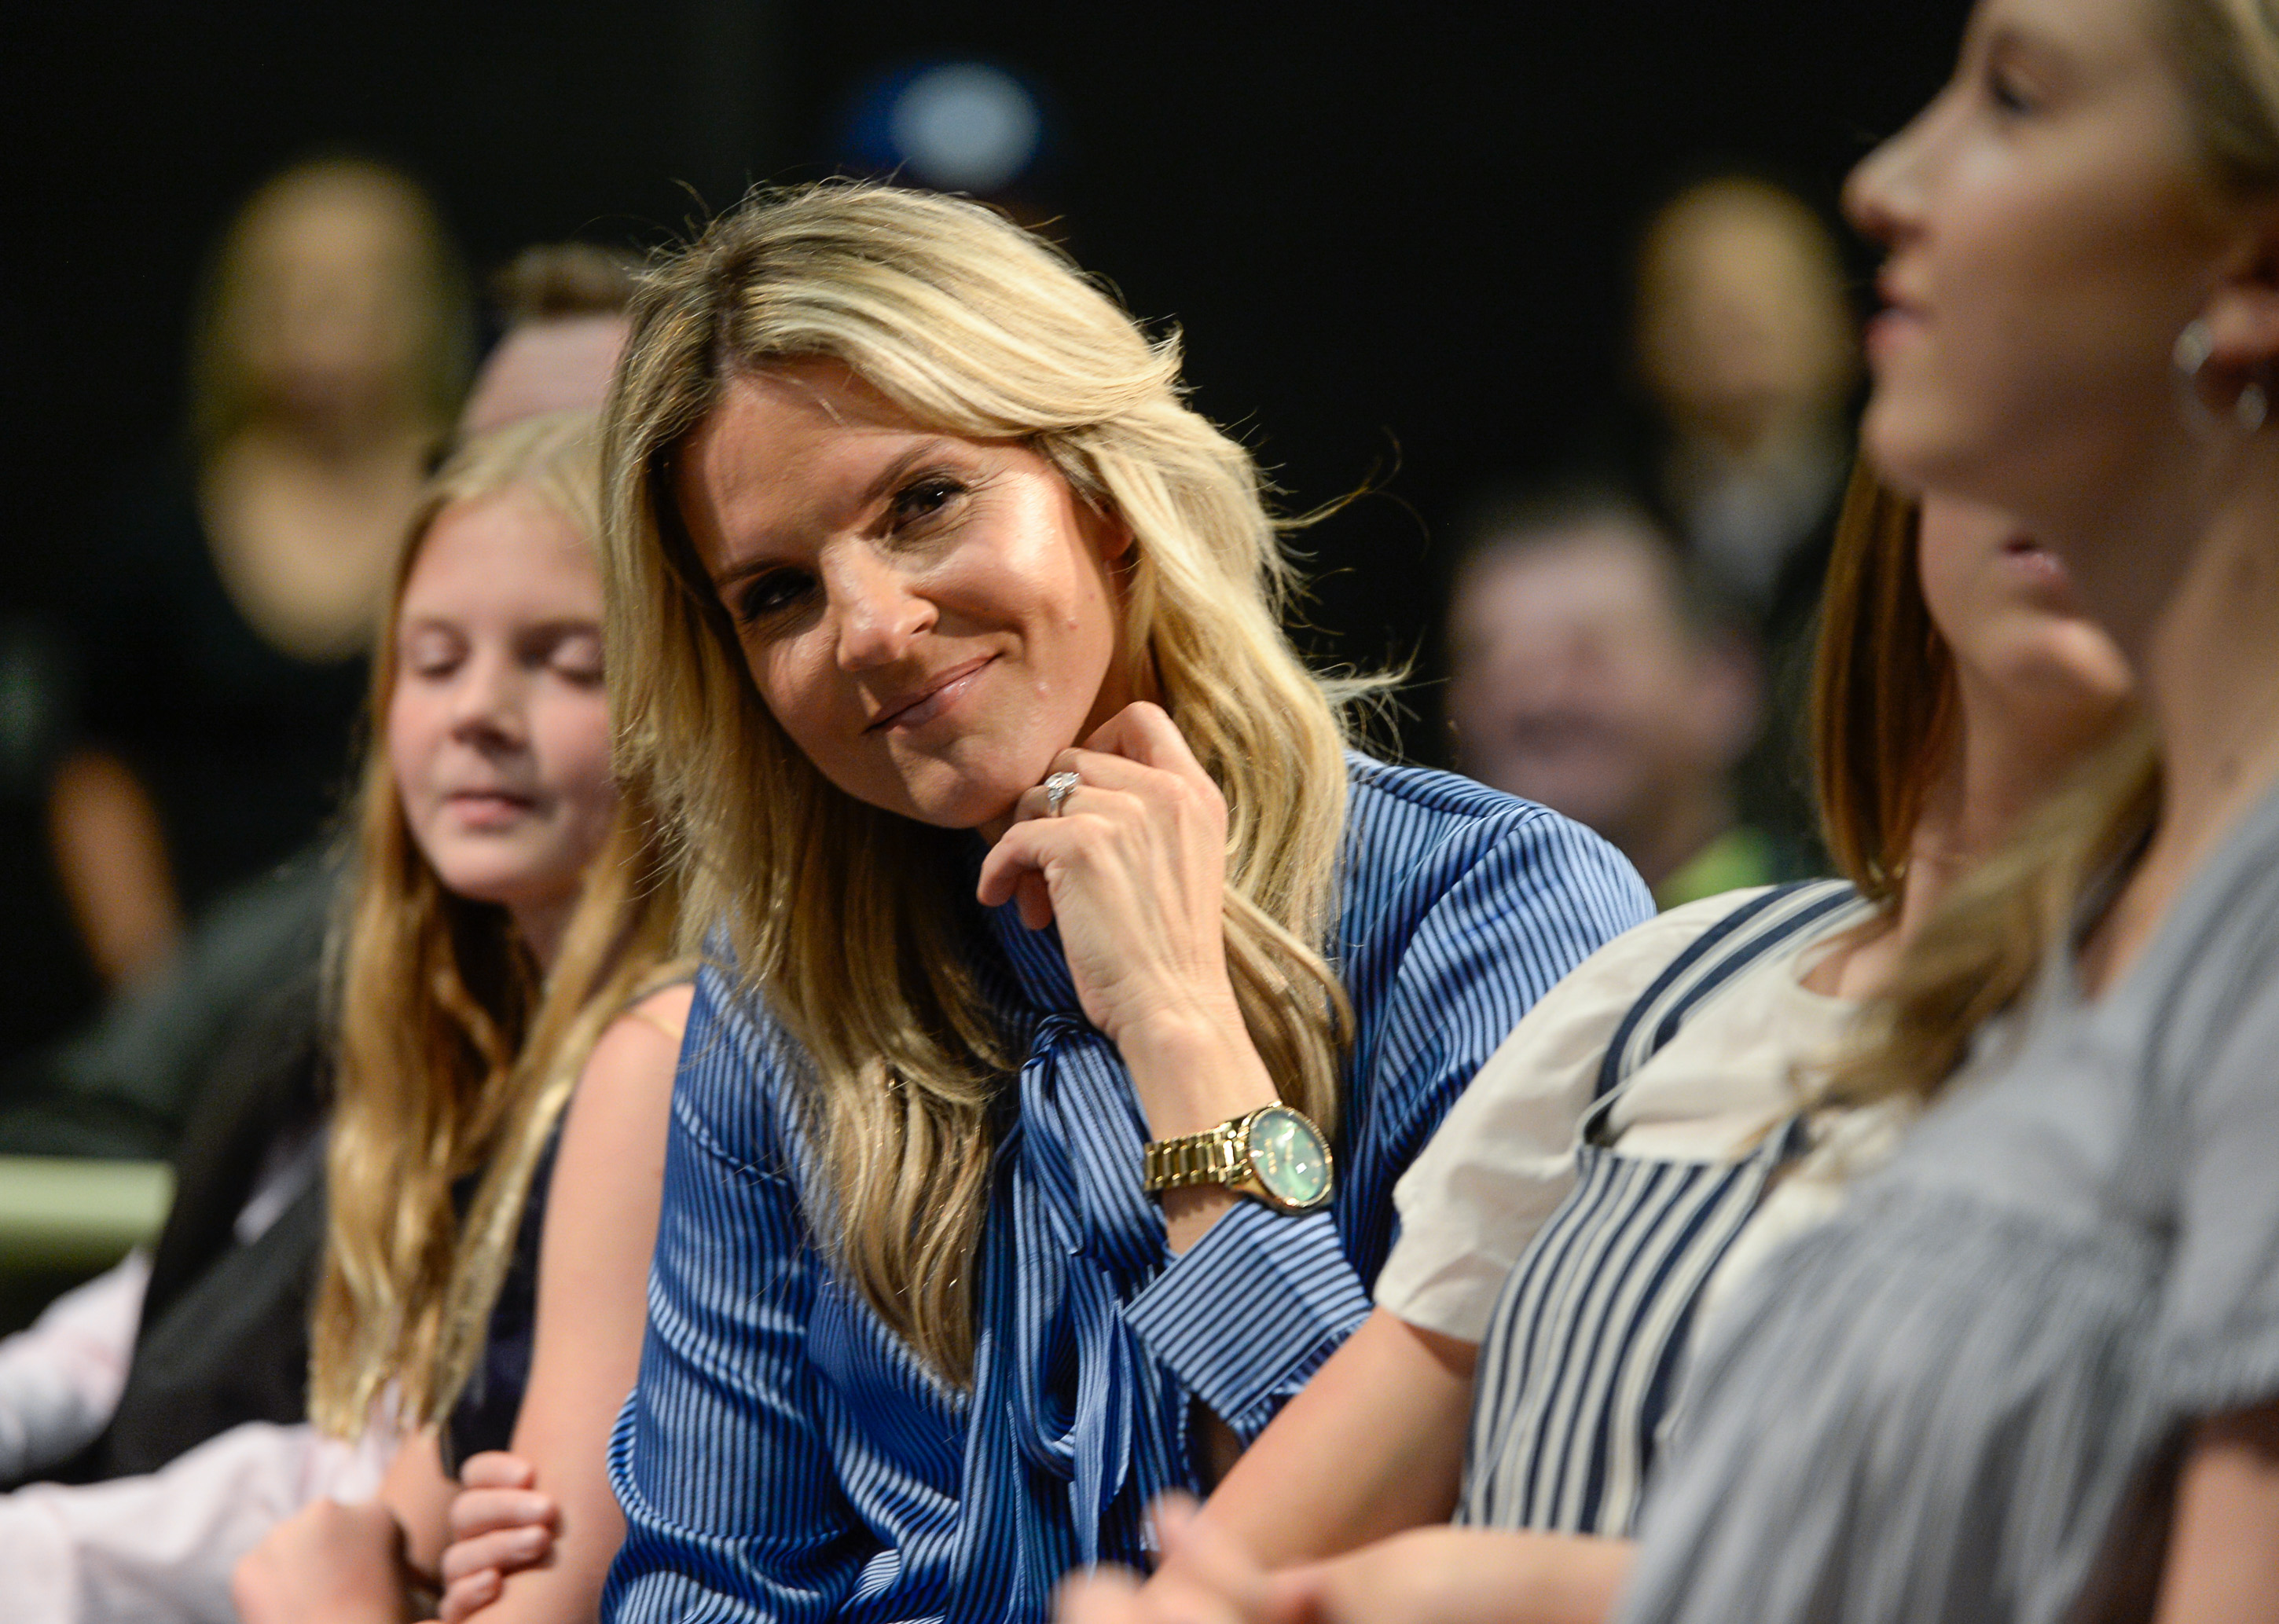 (Francisco Kjolseth  |  The Salt Lake Tribune)  Lee Anne Pope looks over at her daughters as her husband Mark is announced as BYU's new head basketball coach during a press event at the BYU broadcasting building on Wed. April 10, 2019.